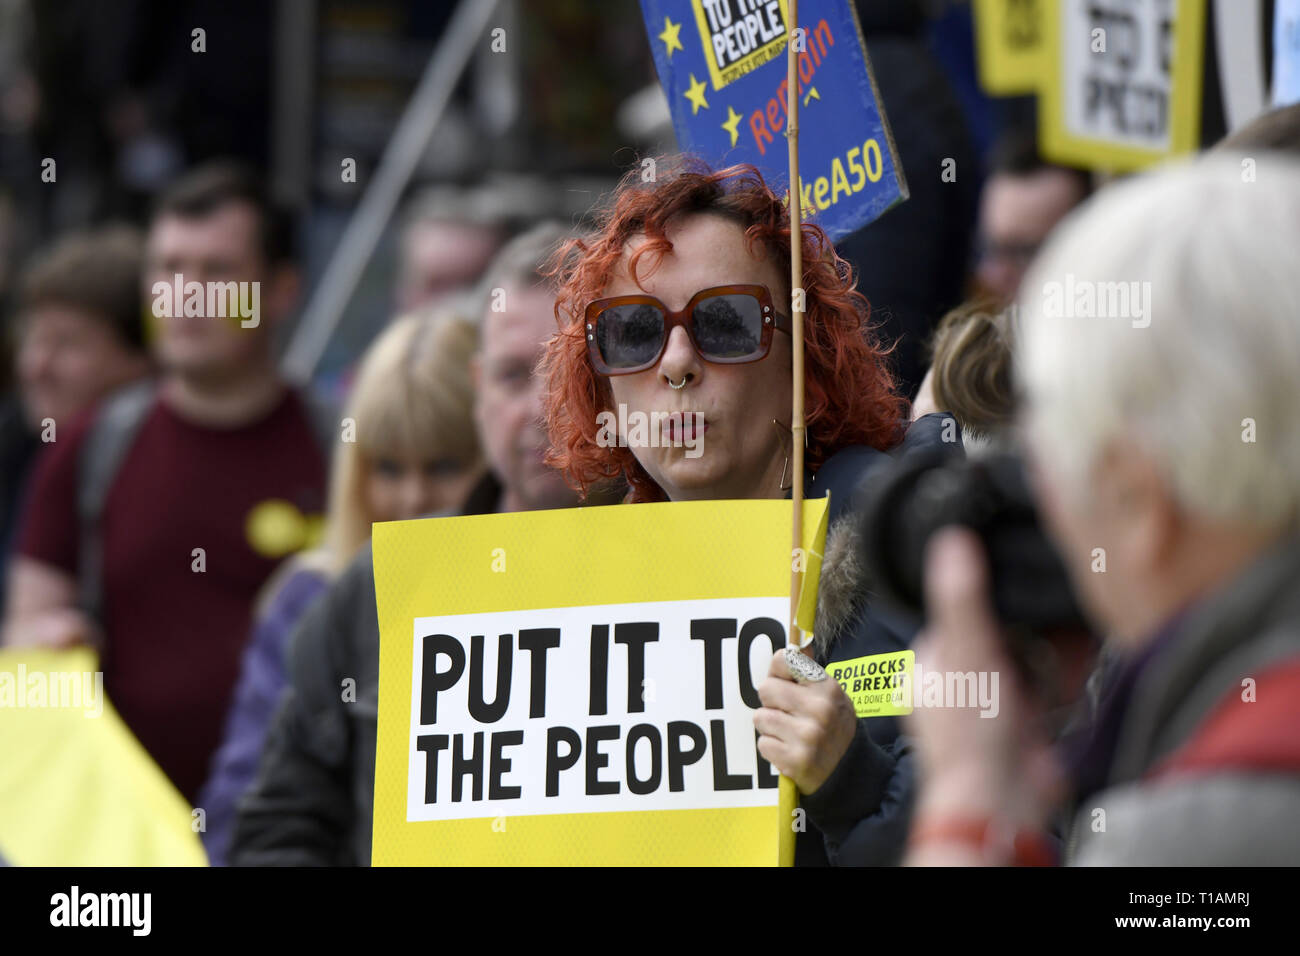 London, Greater London, UK. 23rd Mar, 2019. A protester seen holding a placard that says ''Put it to the people'' during the march.Over a million people marched peacefully in central London in favor of a second referendum. People gathered at Park Lane to rally at Parliament Square to demonstrate against the Tory government's Brexit negotiations, and to demand a second vote on the final Brexit deal. March was organized by The Peoples Vote. Credit: Andres Pantoja/SOPA Images/ZUMA Wire/Alamy Live News - Stock Image